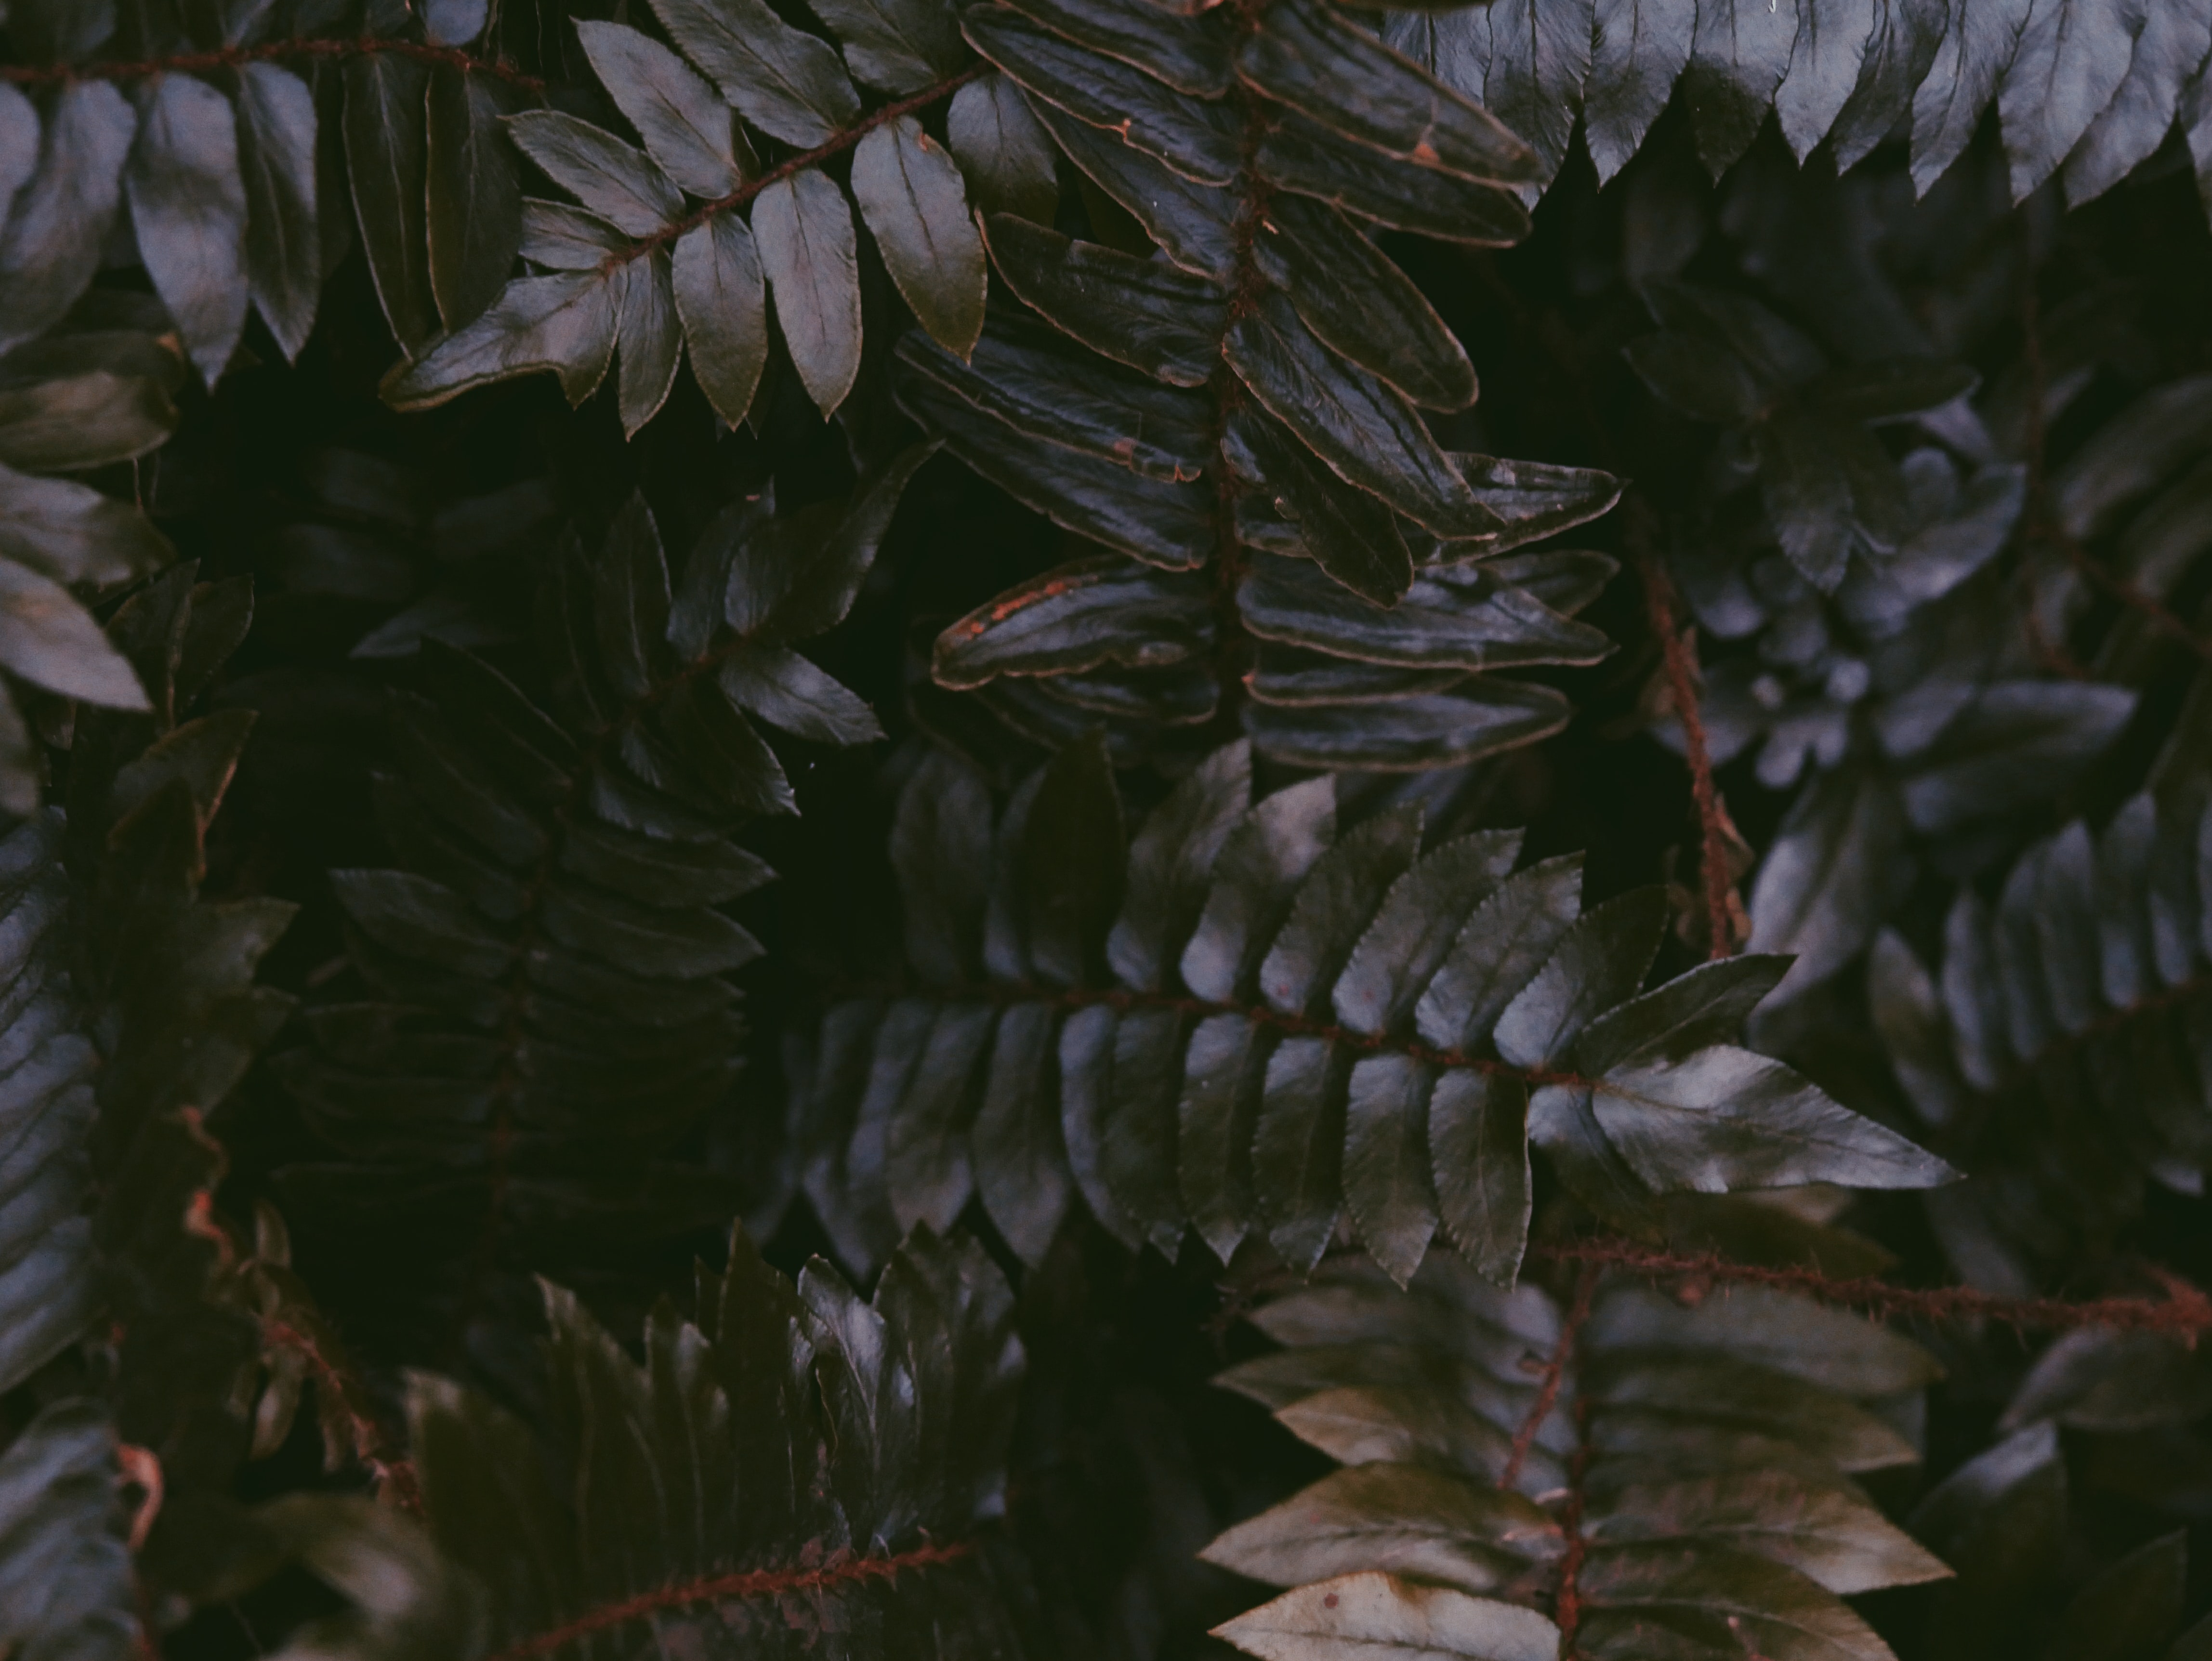 black leafed plant in macro shot photography